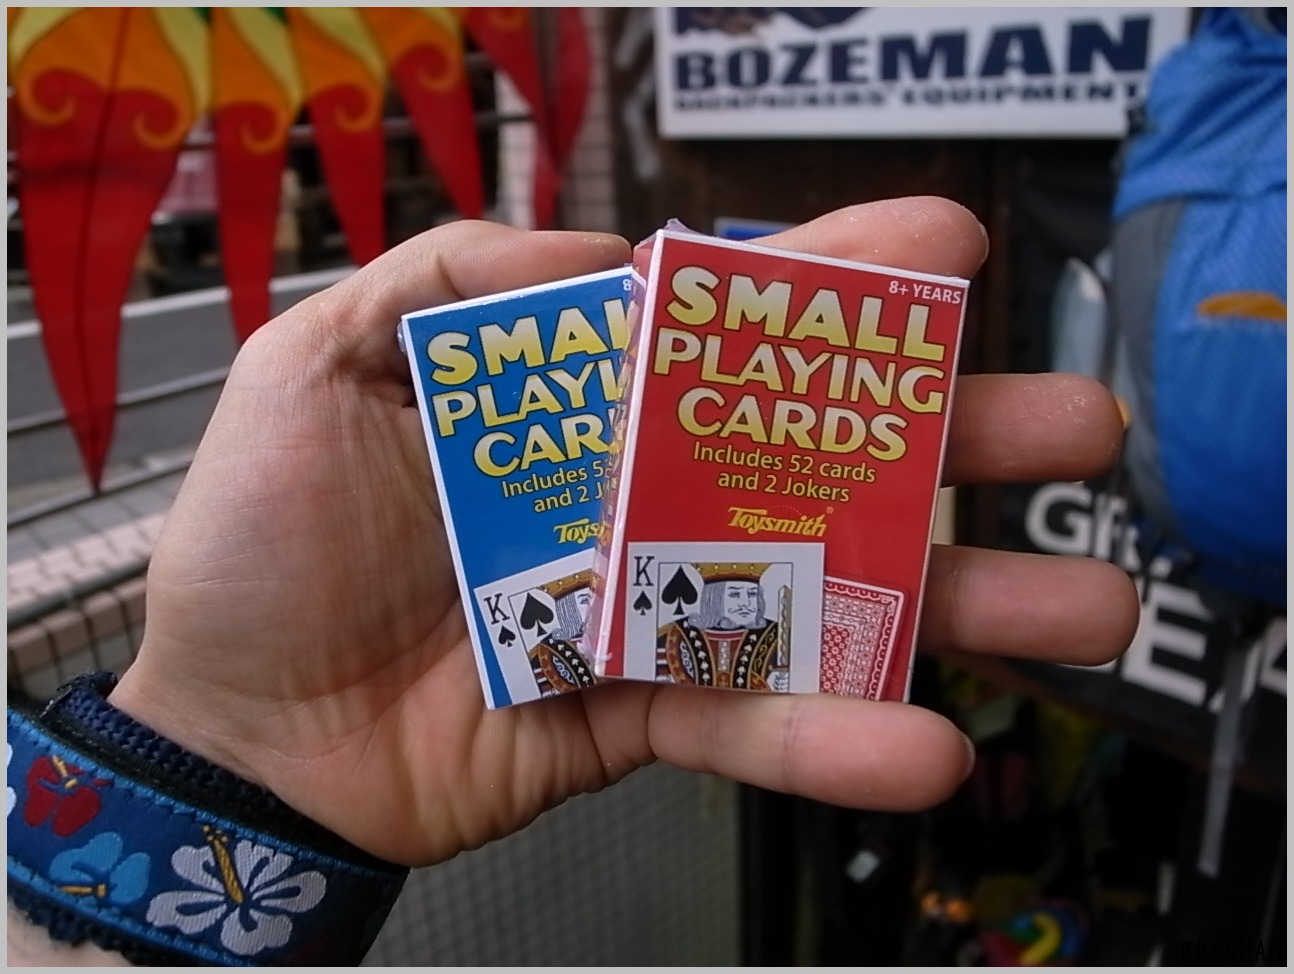 Toysmith Small Playing Cards_f0159943_15555594.jpg